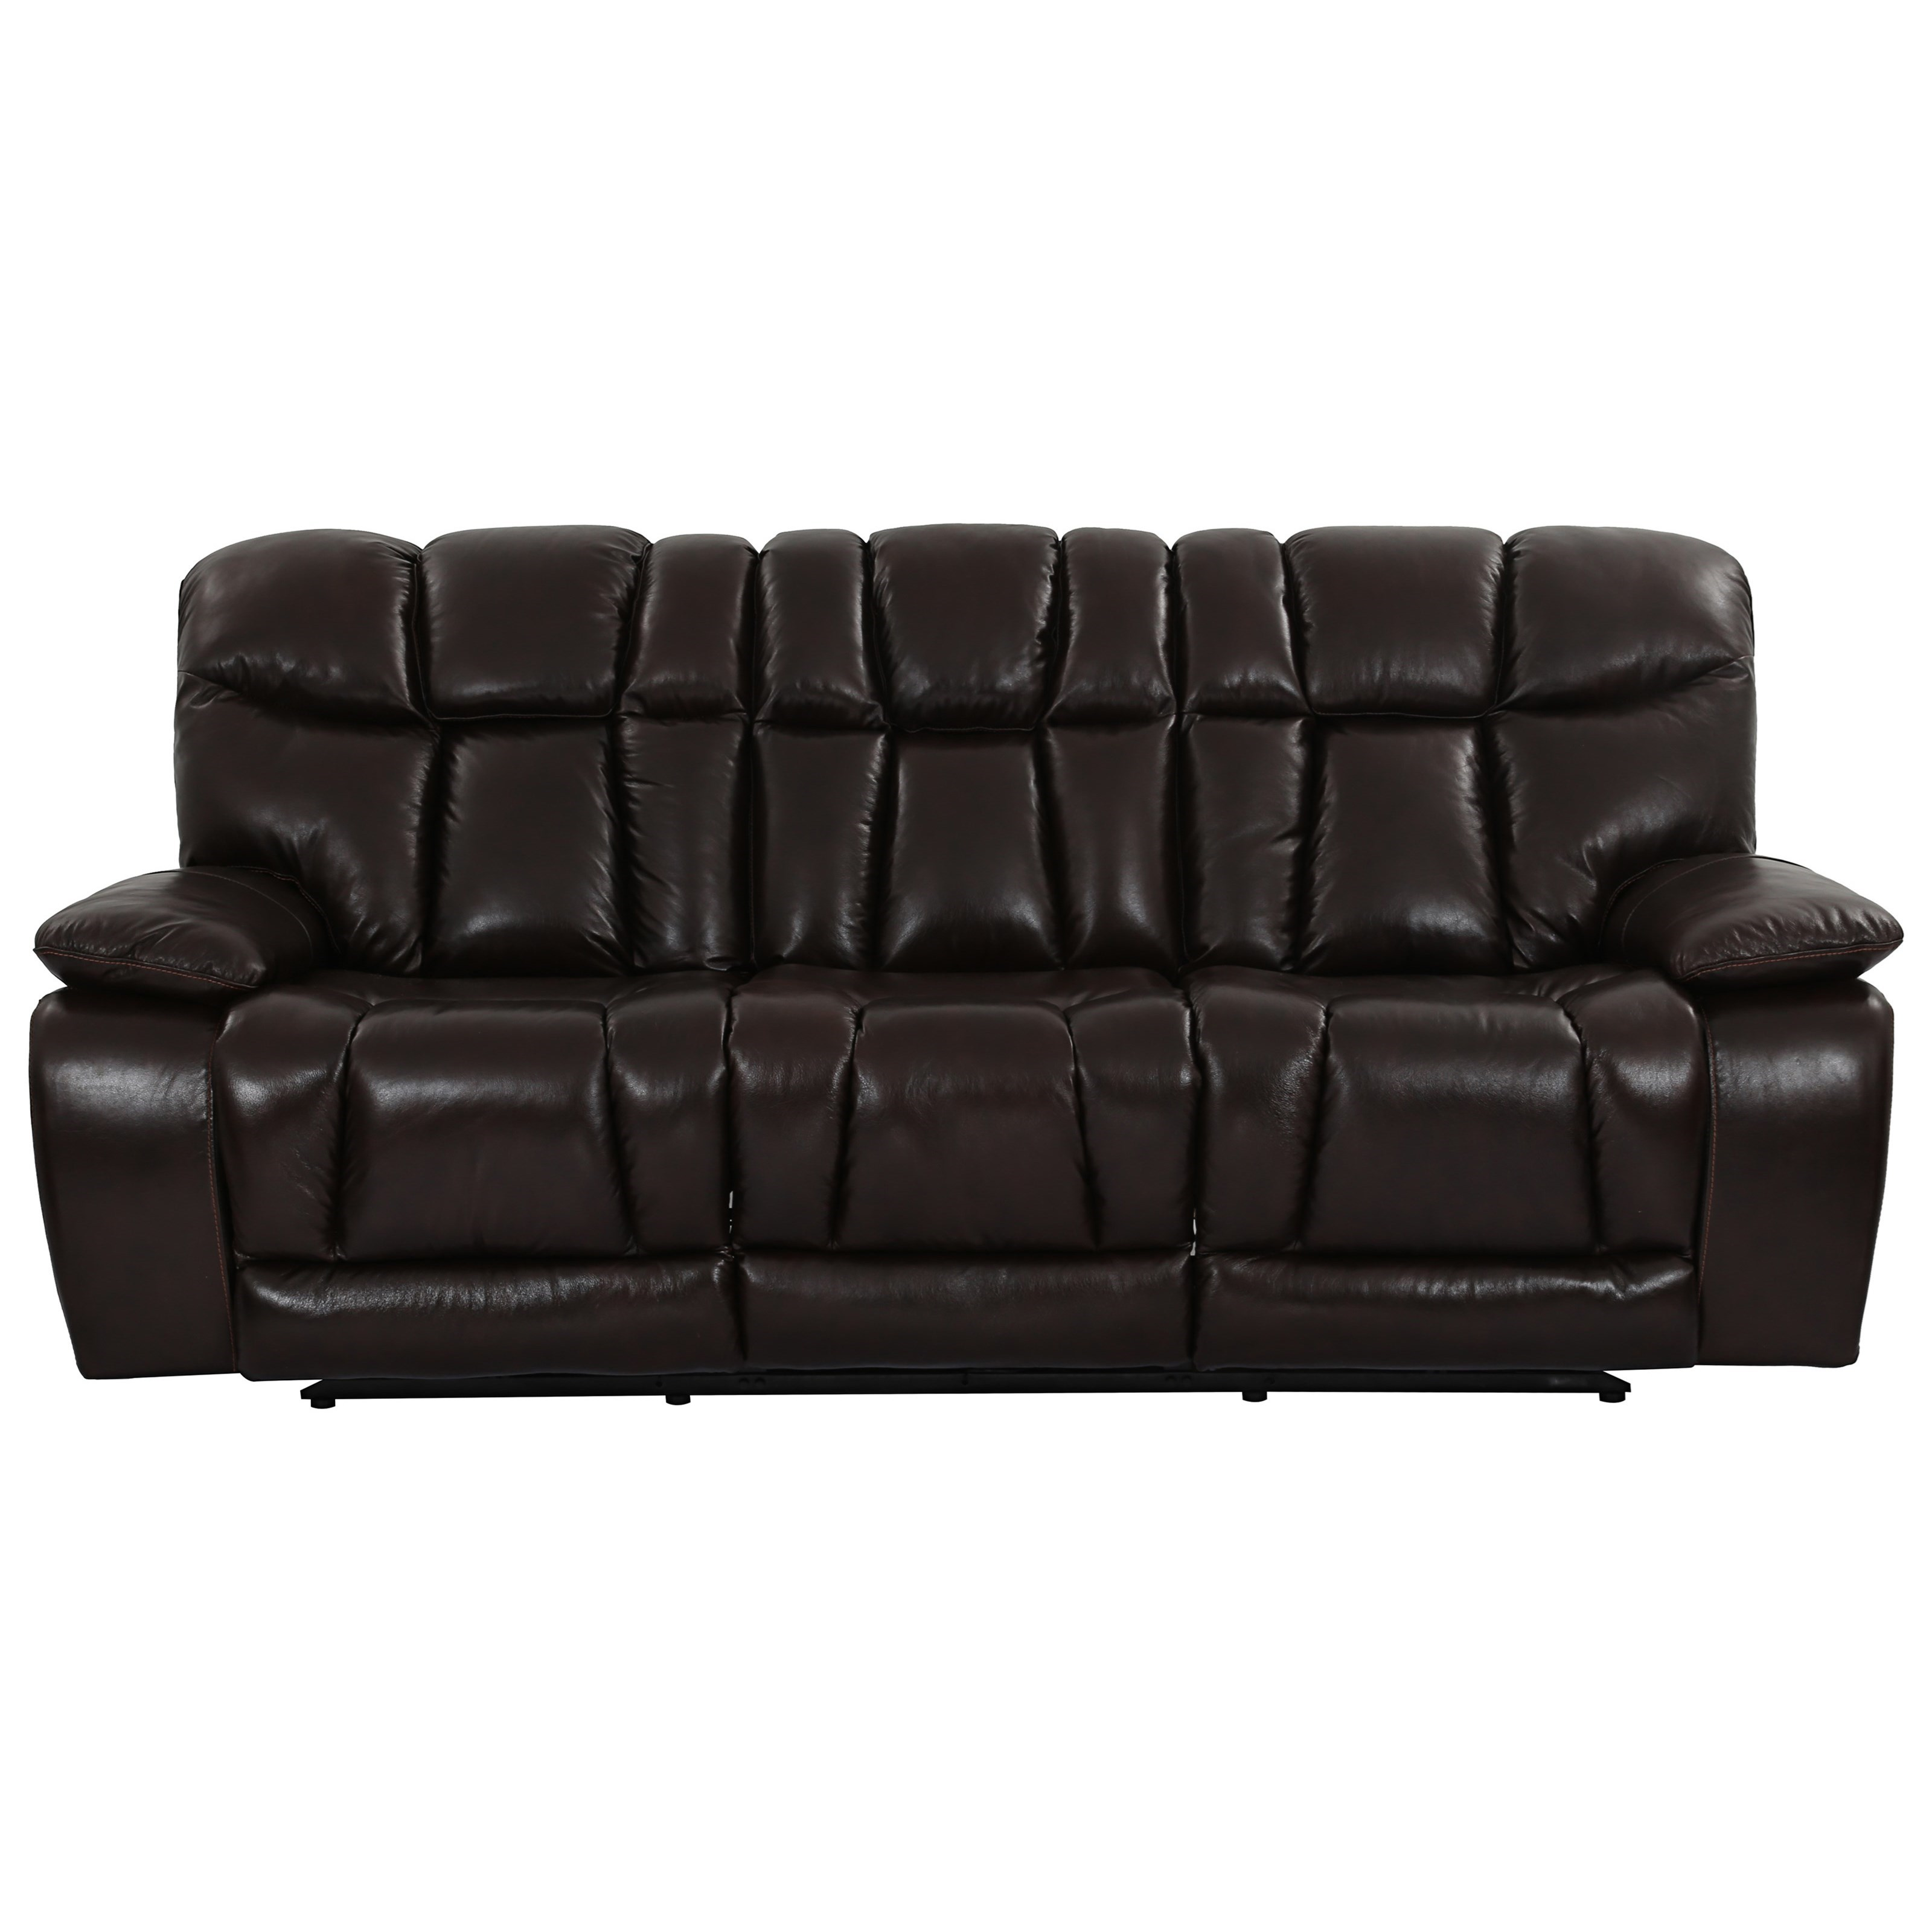 Cheers Sofa X1089M Dual Power Reclining Sofa with Power Headrests